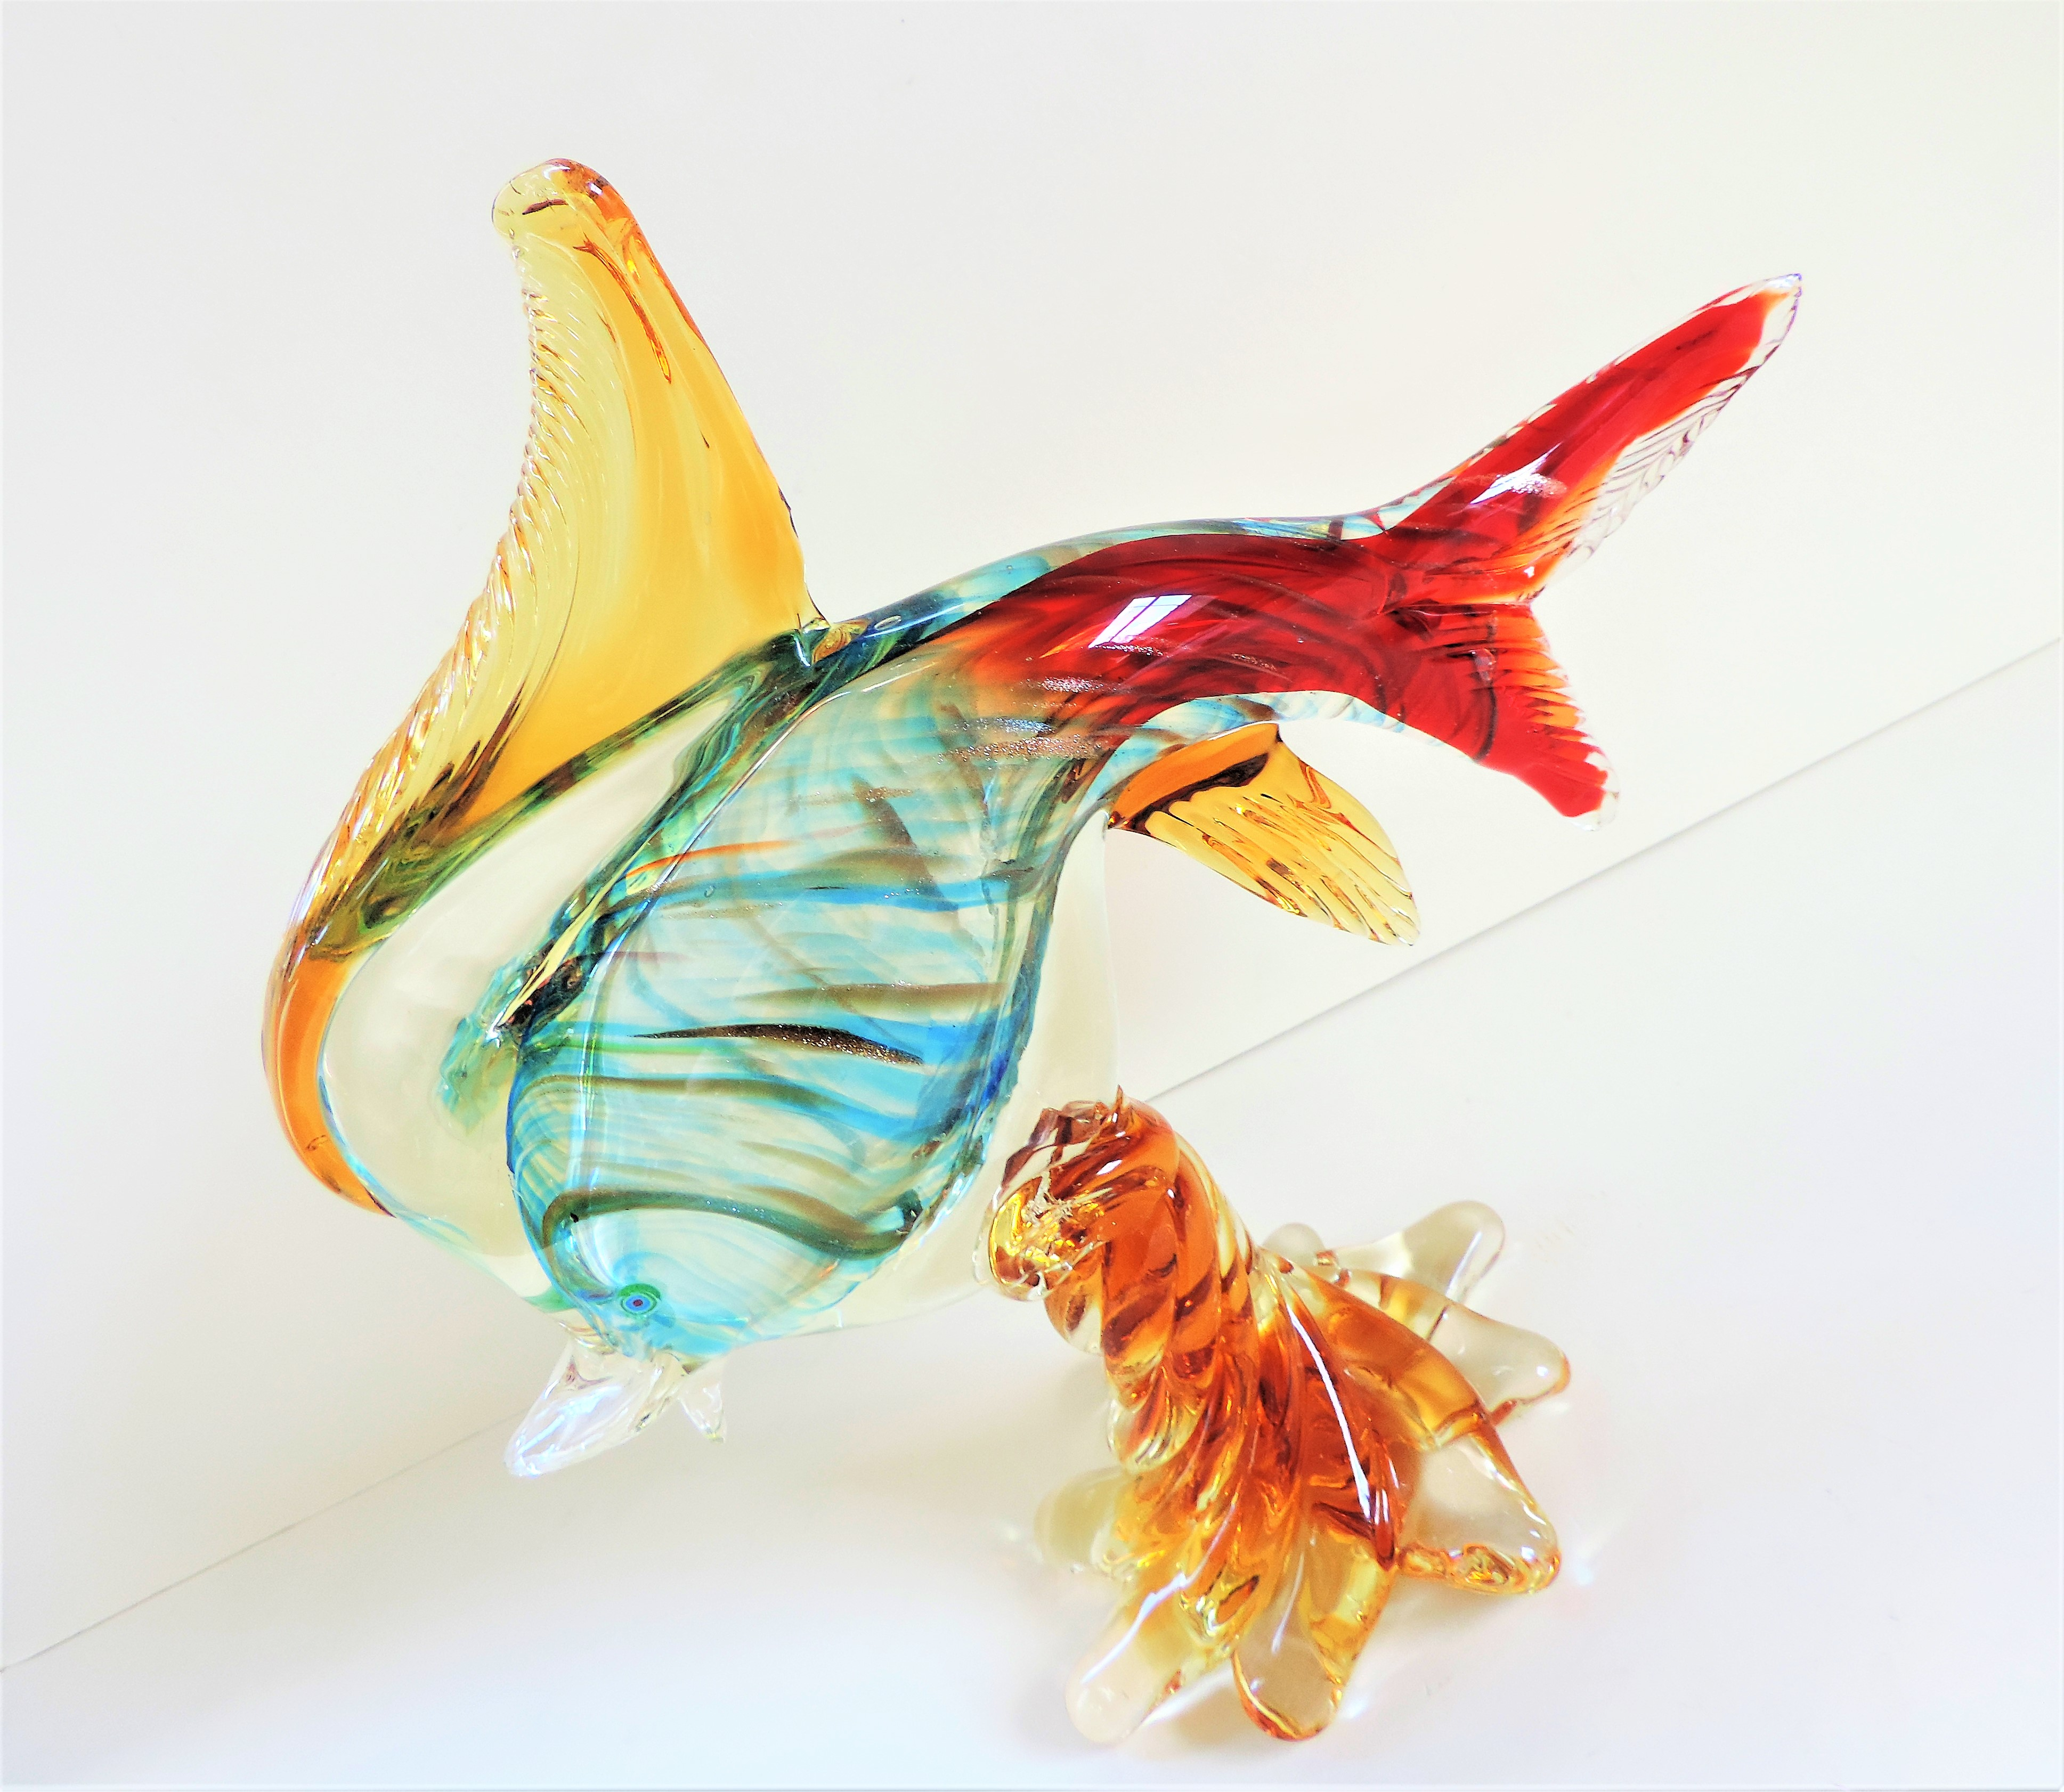 Vintage Murano Glass Fish Sculpture 28cm Tall - Image 4 of 7